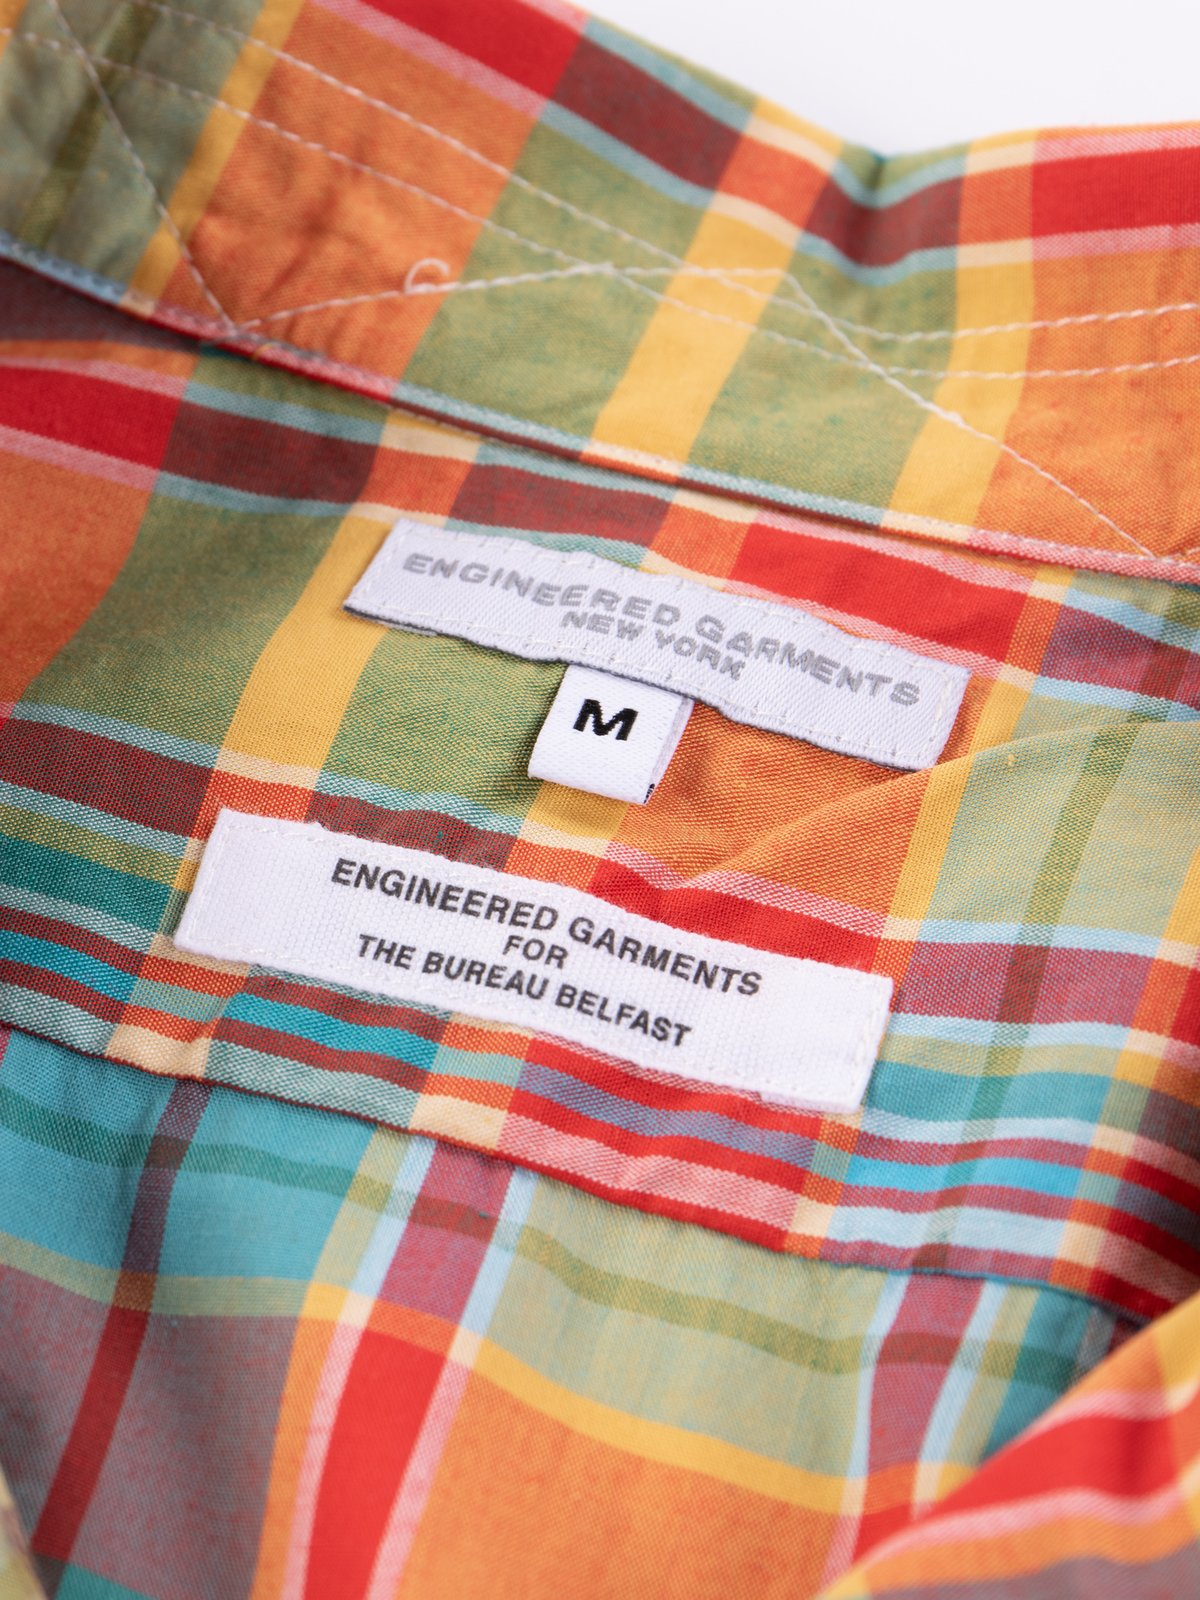 Orange Plaid Cotton Broadcloth Camp Shirt - Image 6